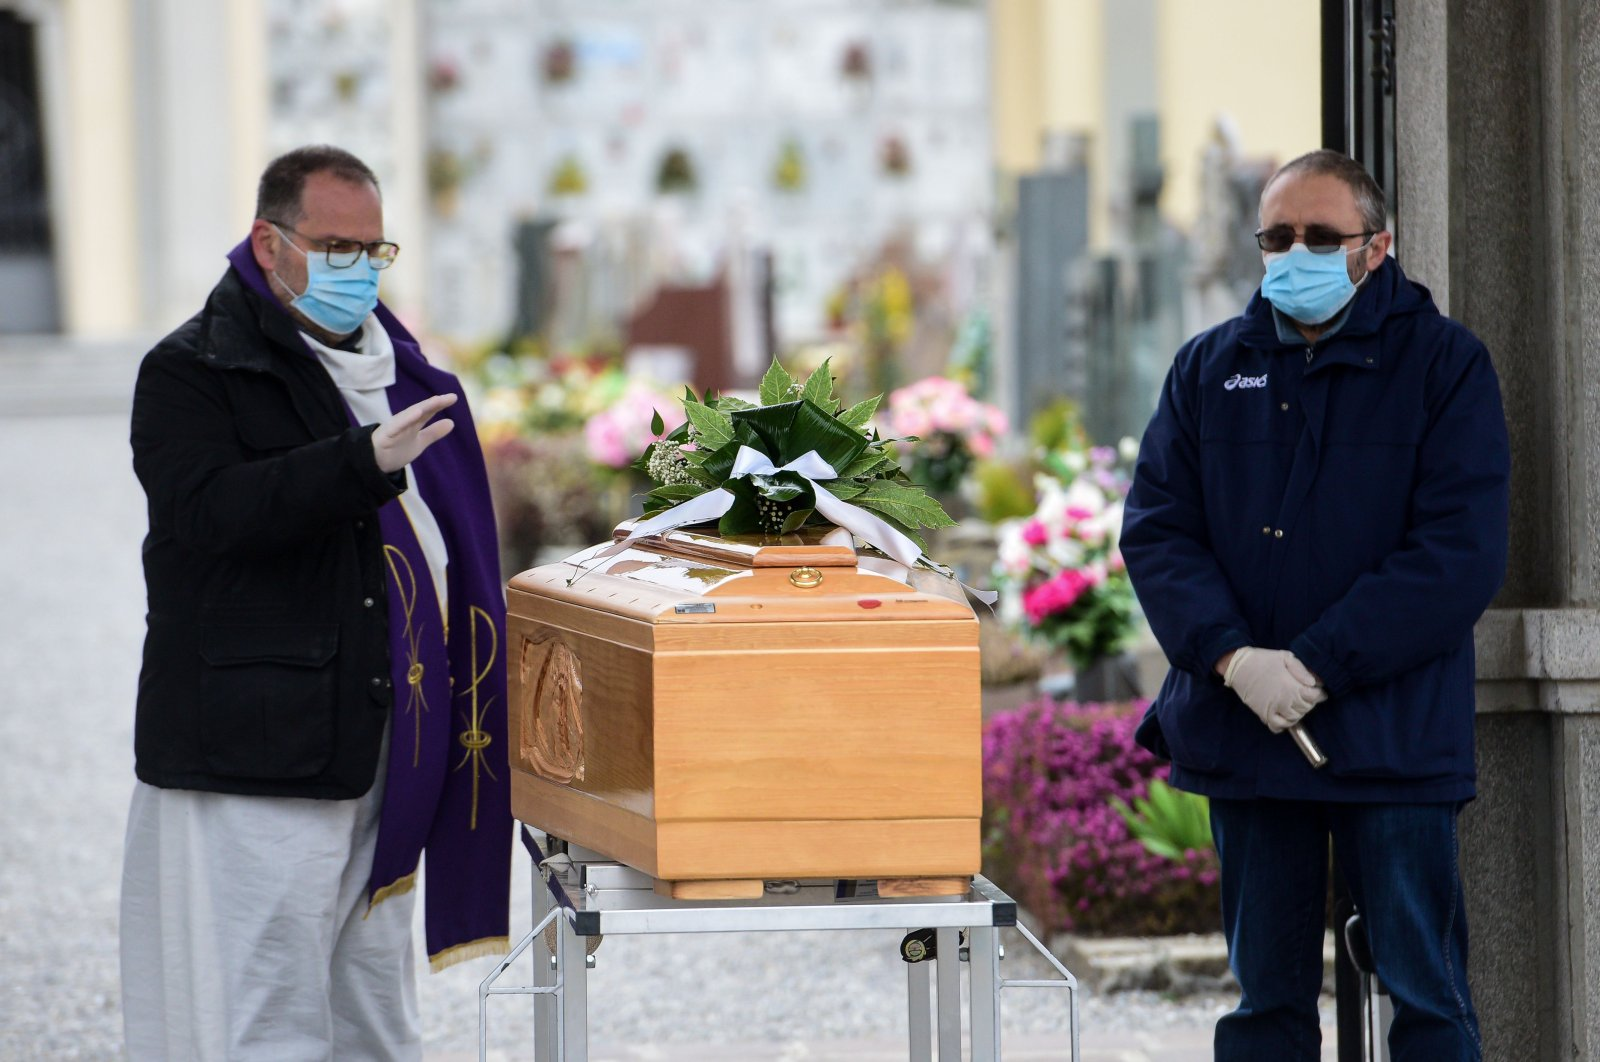 A priest (L), assisted by a pallbearer, both wearing a face mask, gives the last blessing to a deceased person, by a coffin during a funeral service at the cemetery of Bolgare, Lombardy, on March 23, 2020 during the COVID-19 new coronavirus pandemic. (AFP Photo)